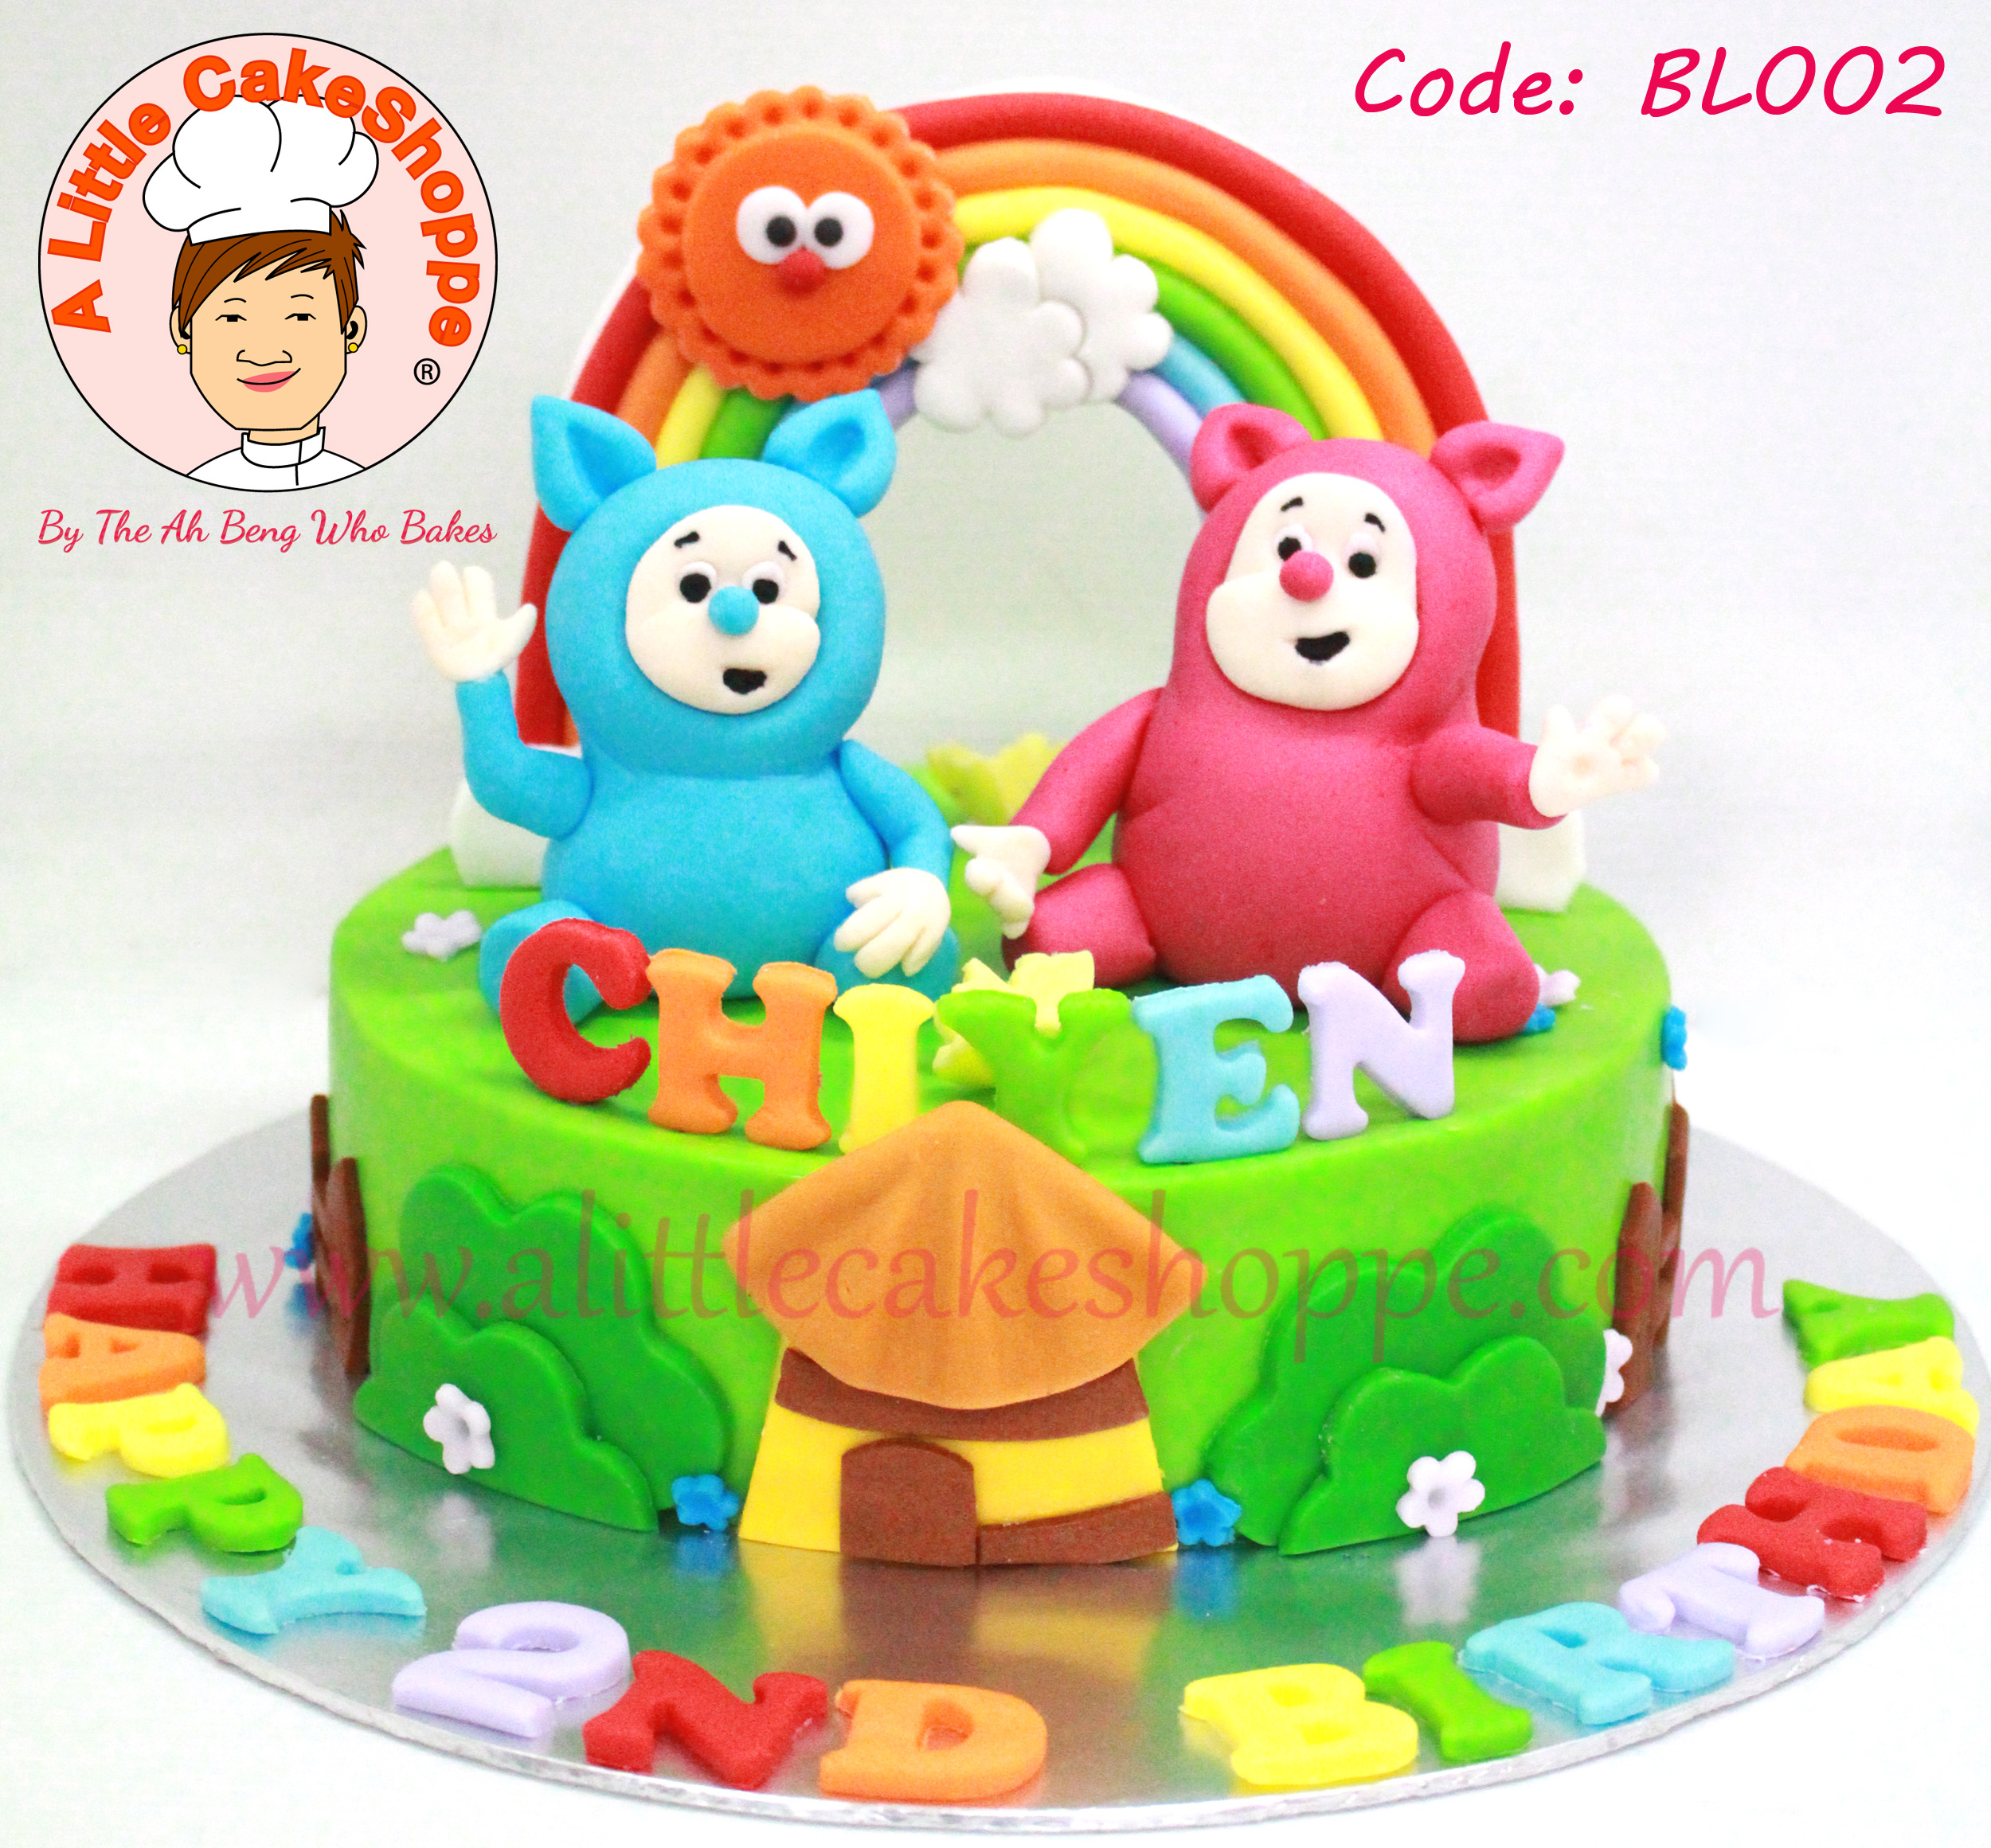 Baby Tv Product Categories A Little Cakeshoppe Singapore